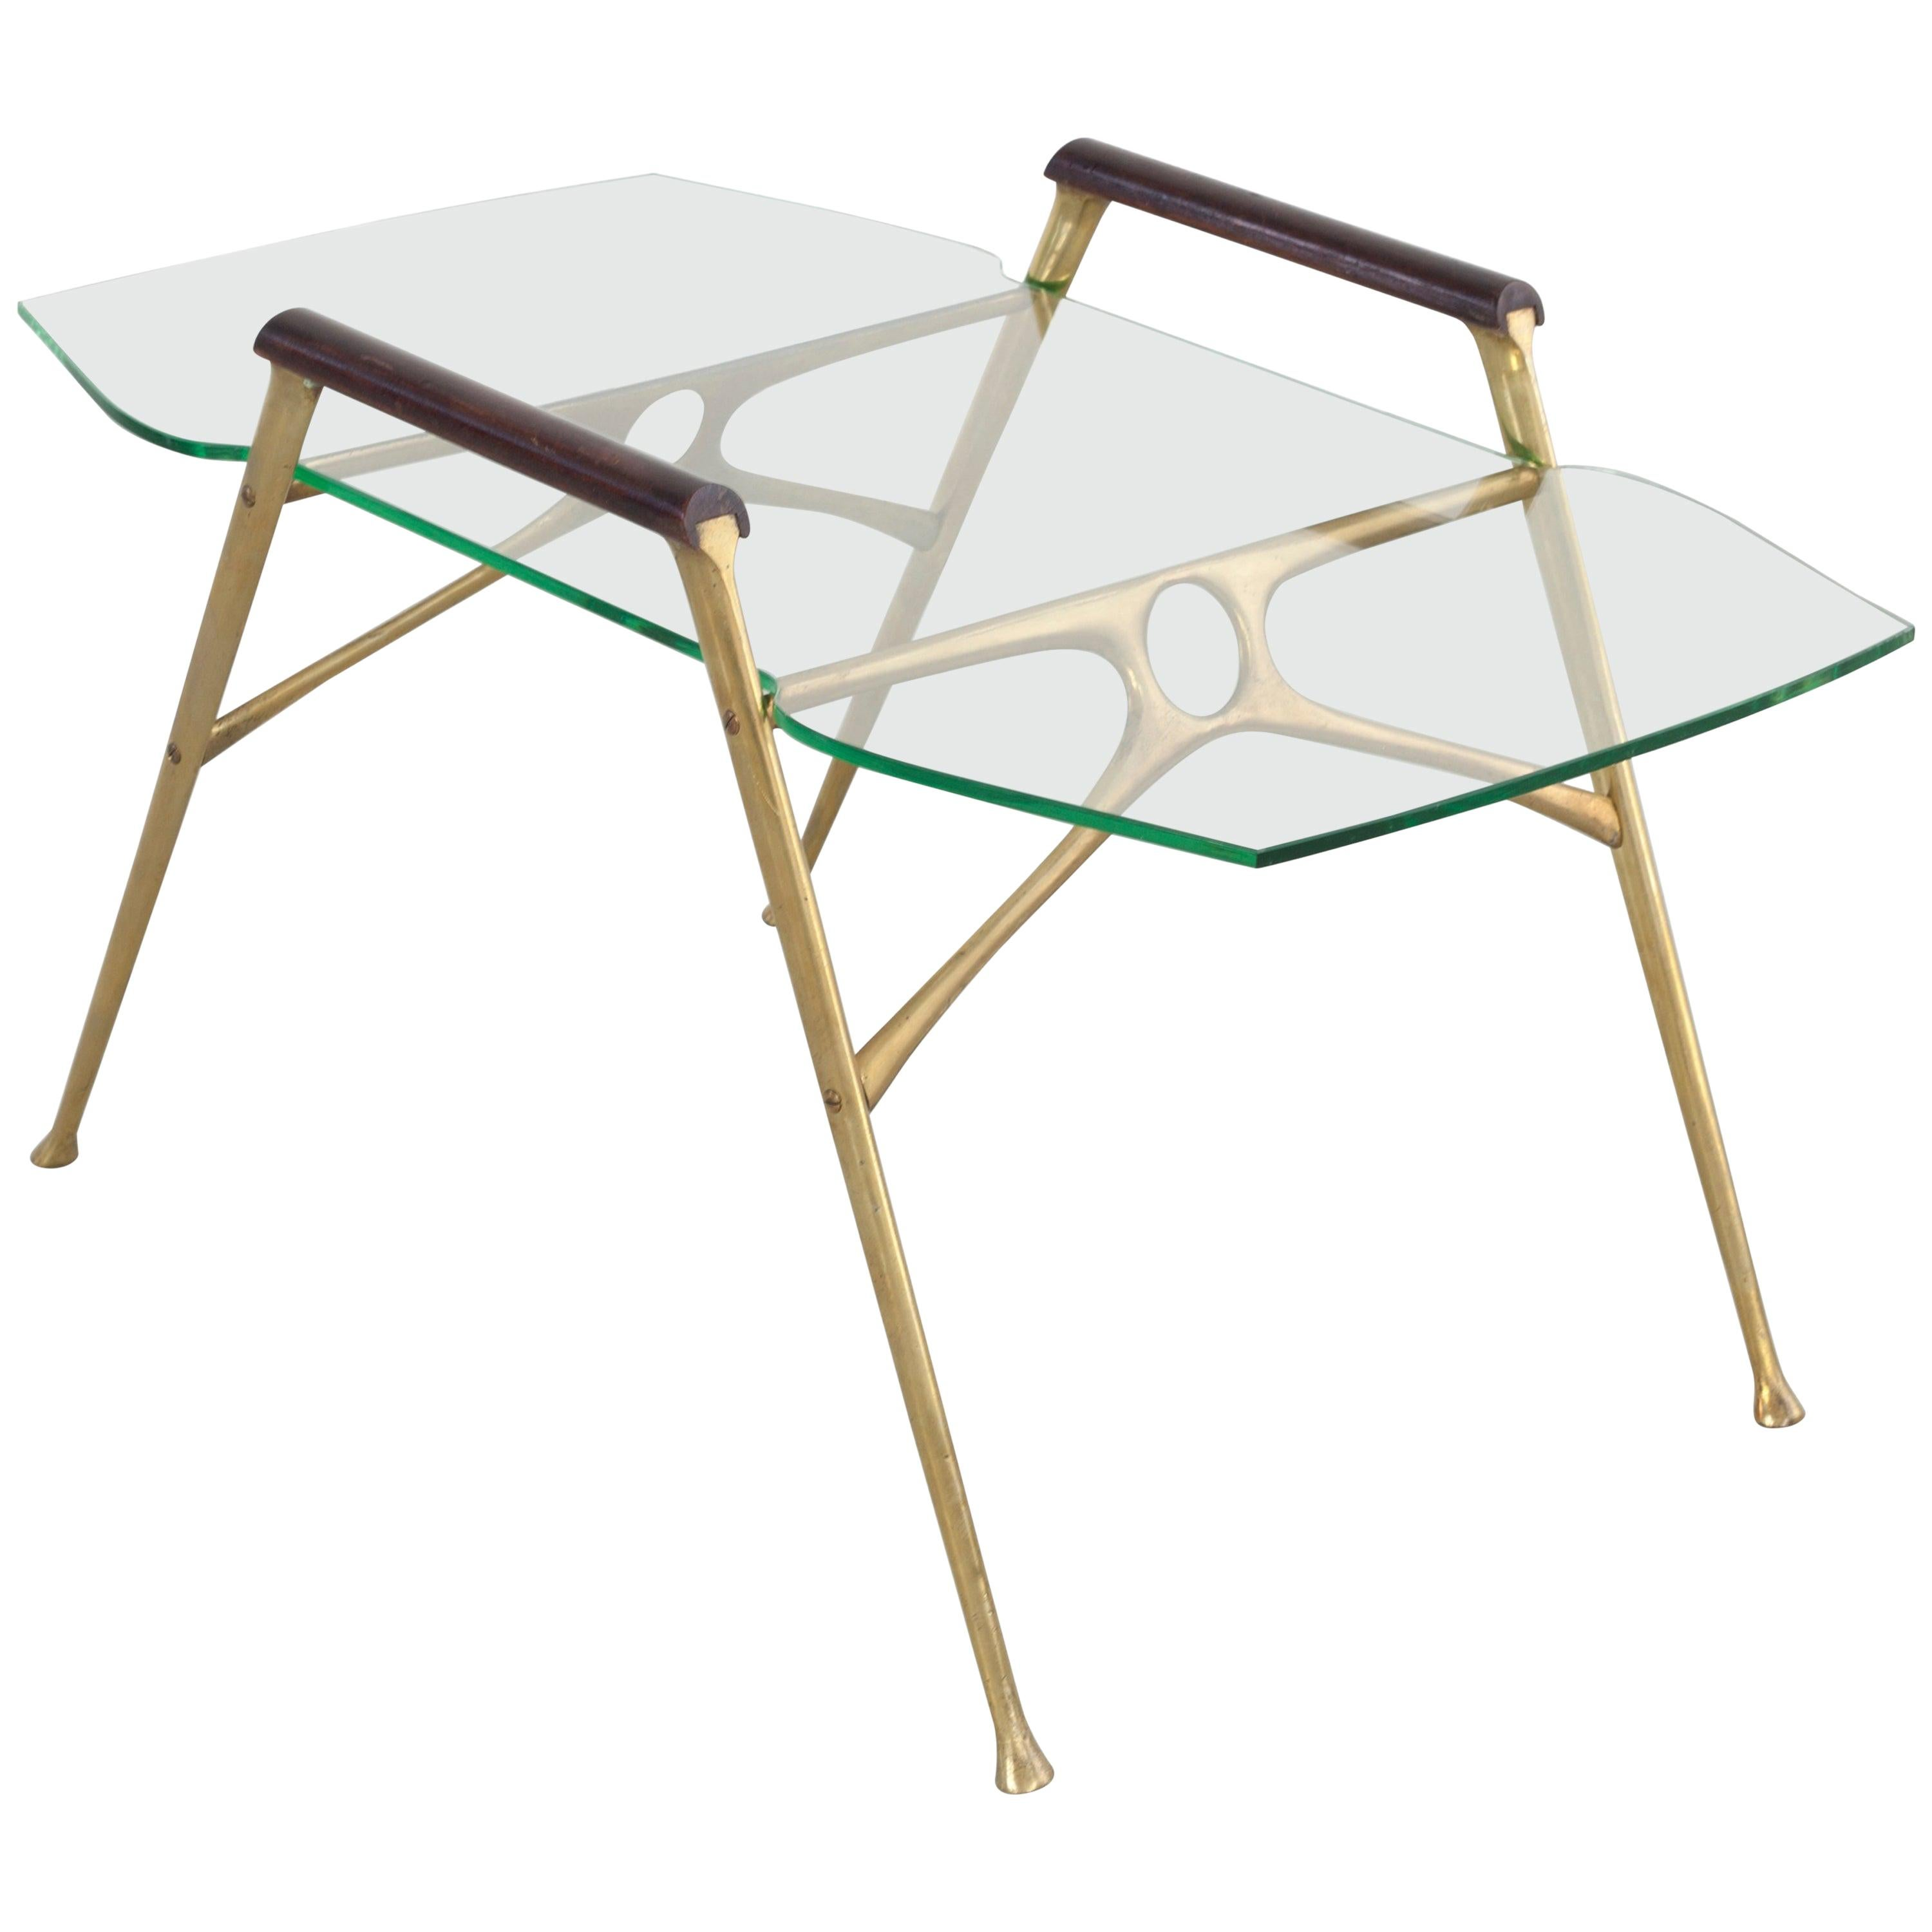 Italian Midcentury Brass Side Table with Glass Top